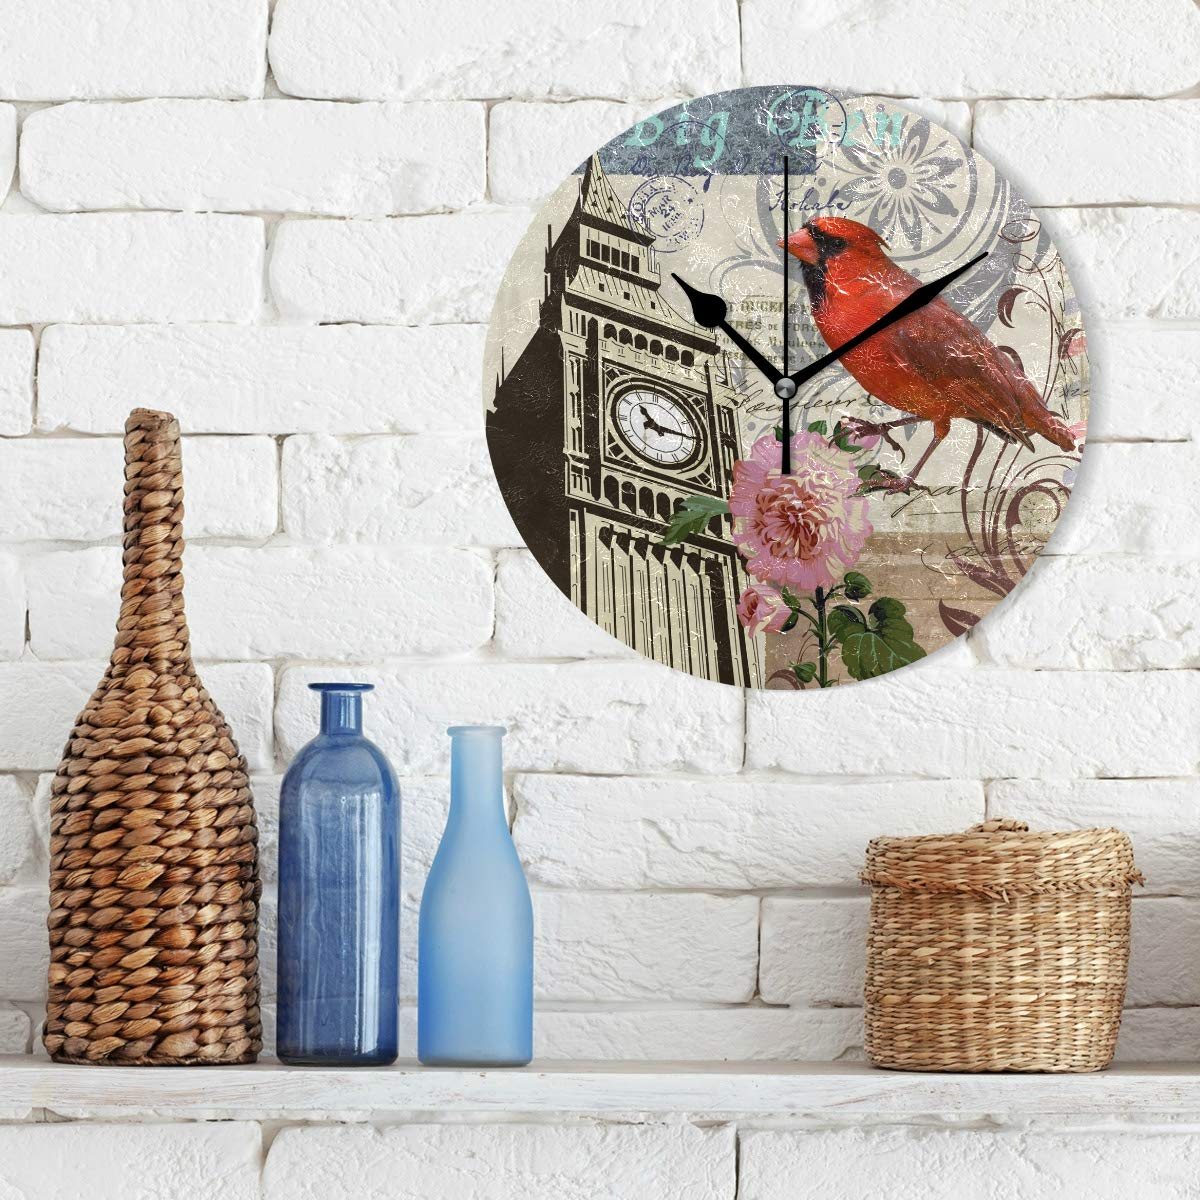 Amazon.com: IVERS Cardinal Big Ben Novelty Art Decorative Round Wall Clock: Home & Kitchen